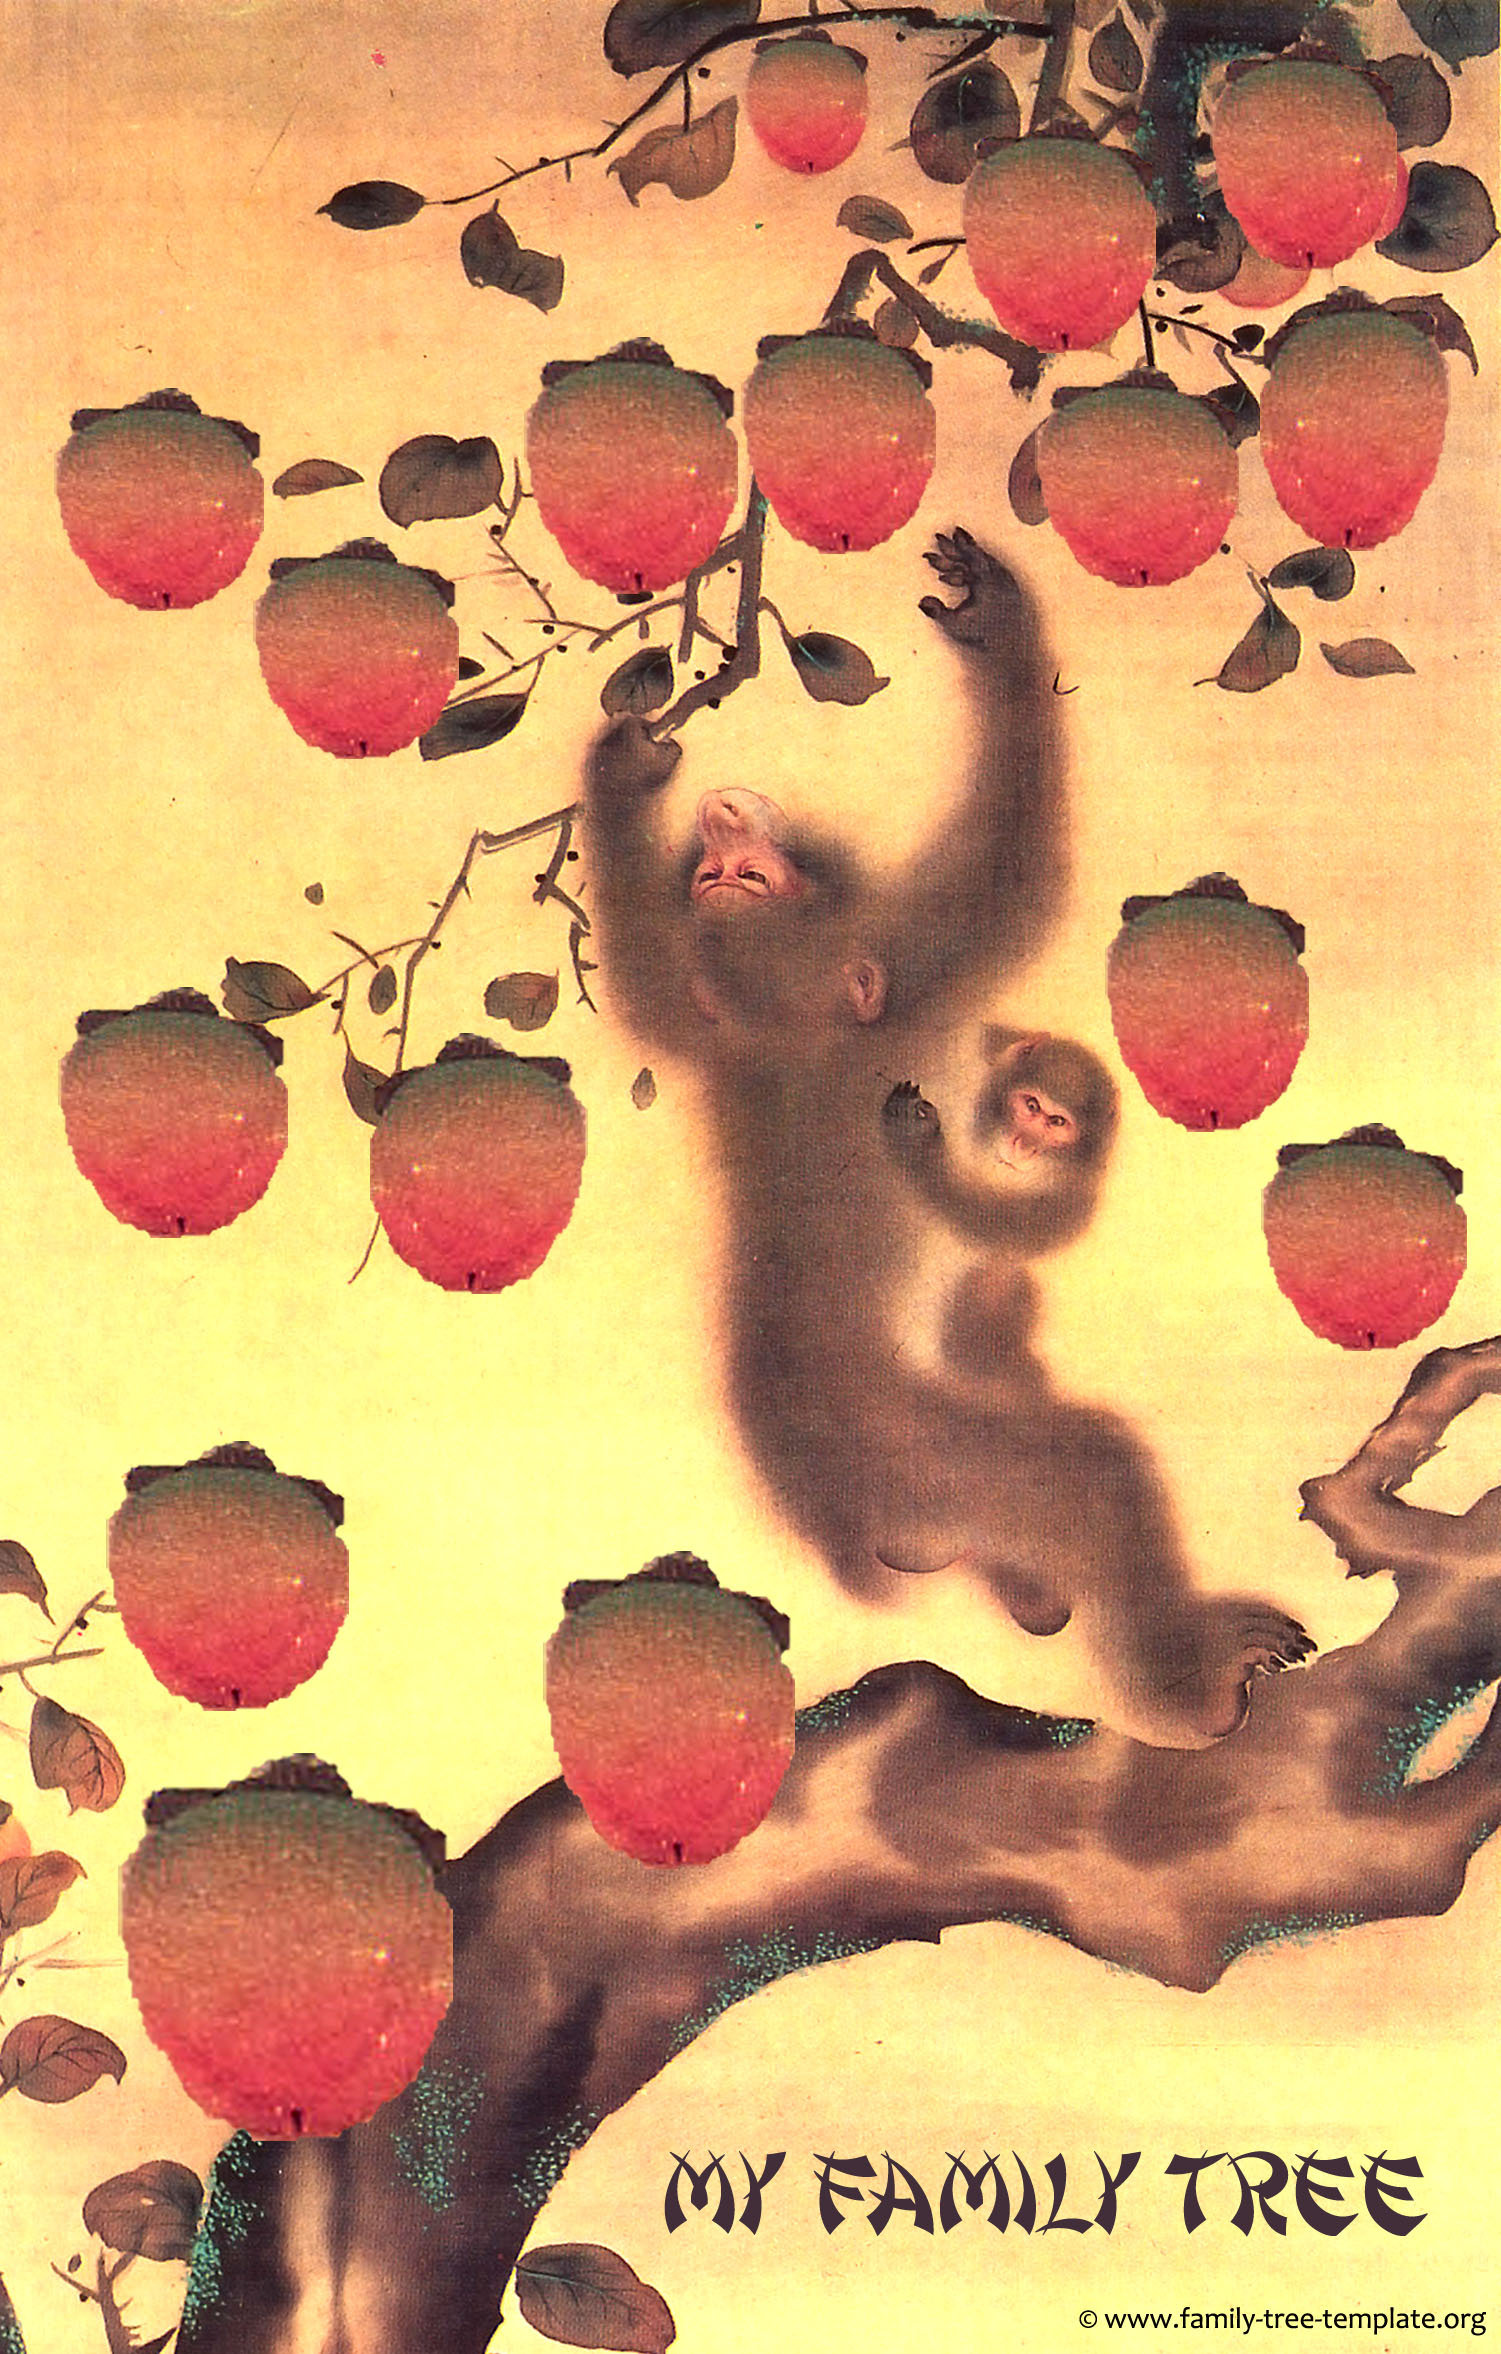 Printable family tree design chart for kids: Cute Japanese monkey painting of a monkey mother reaching for a mango.